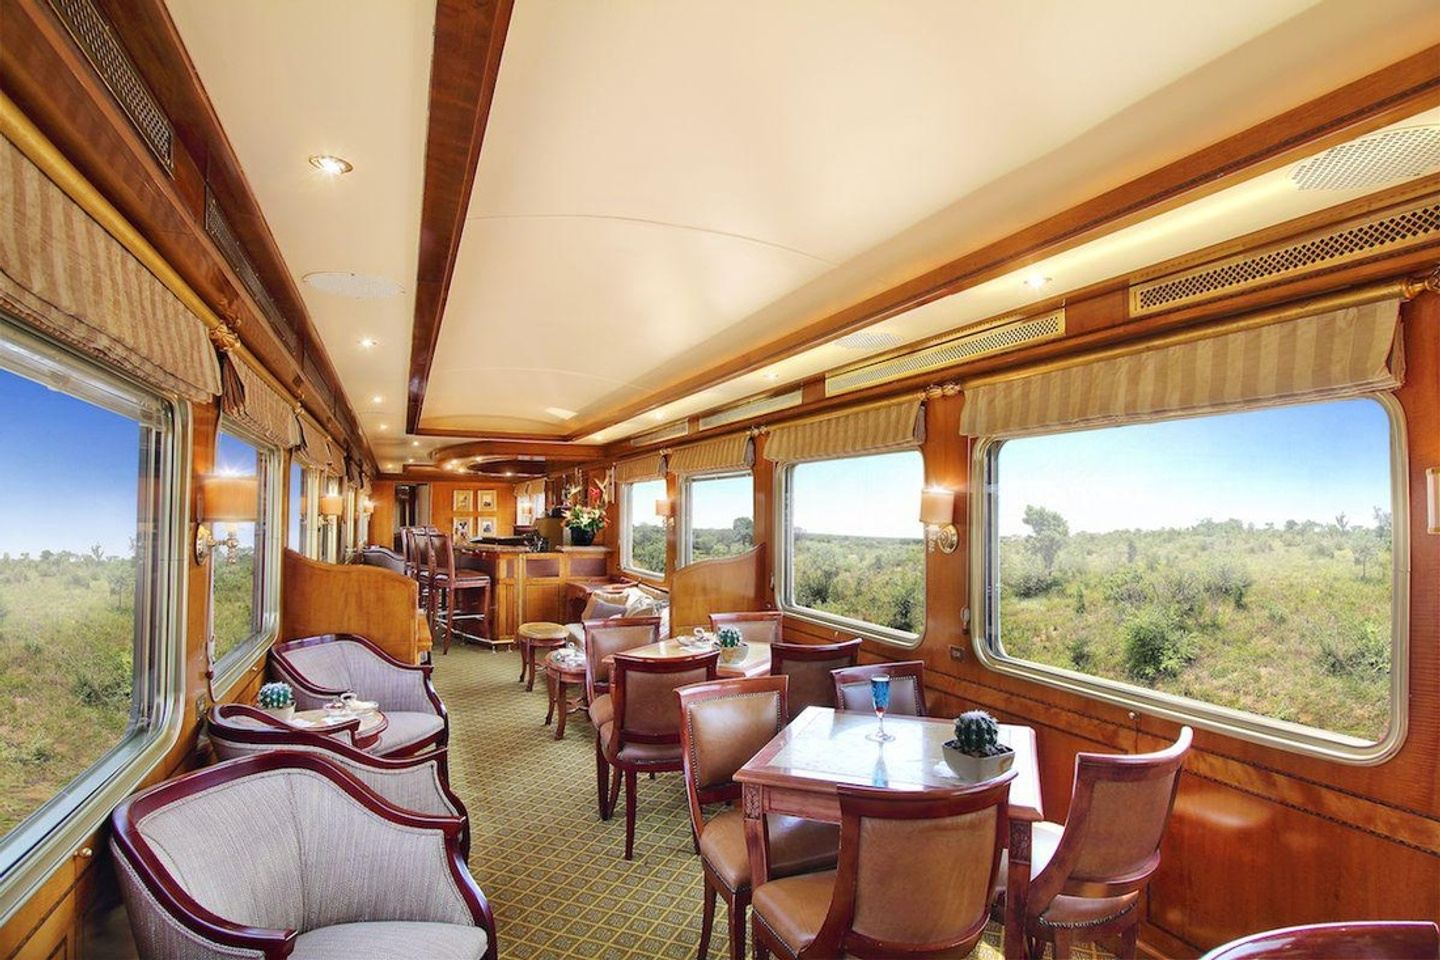 Luxurious Blue Train - South Arica